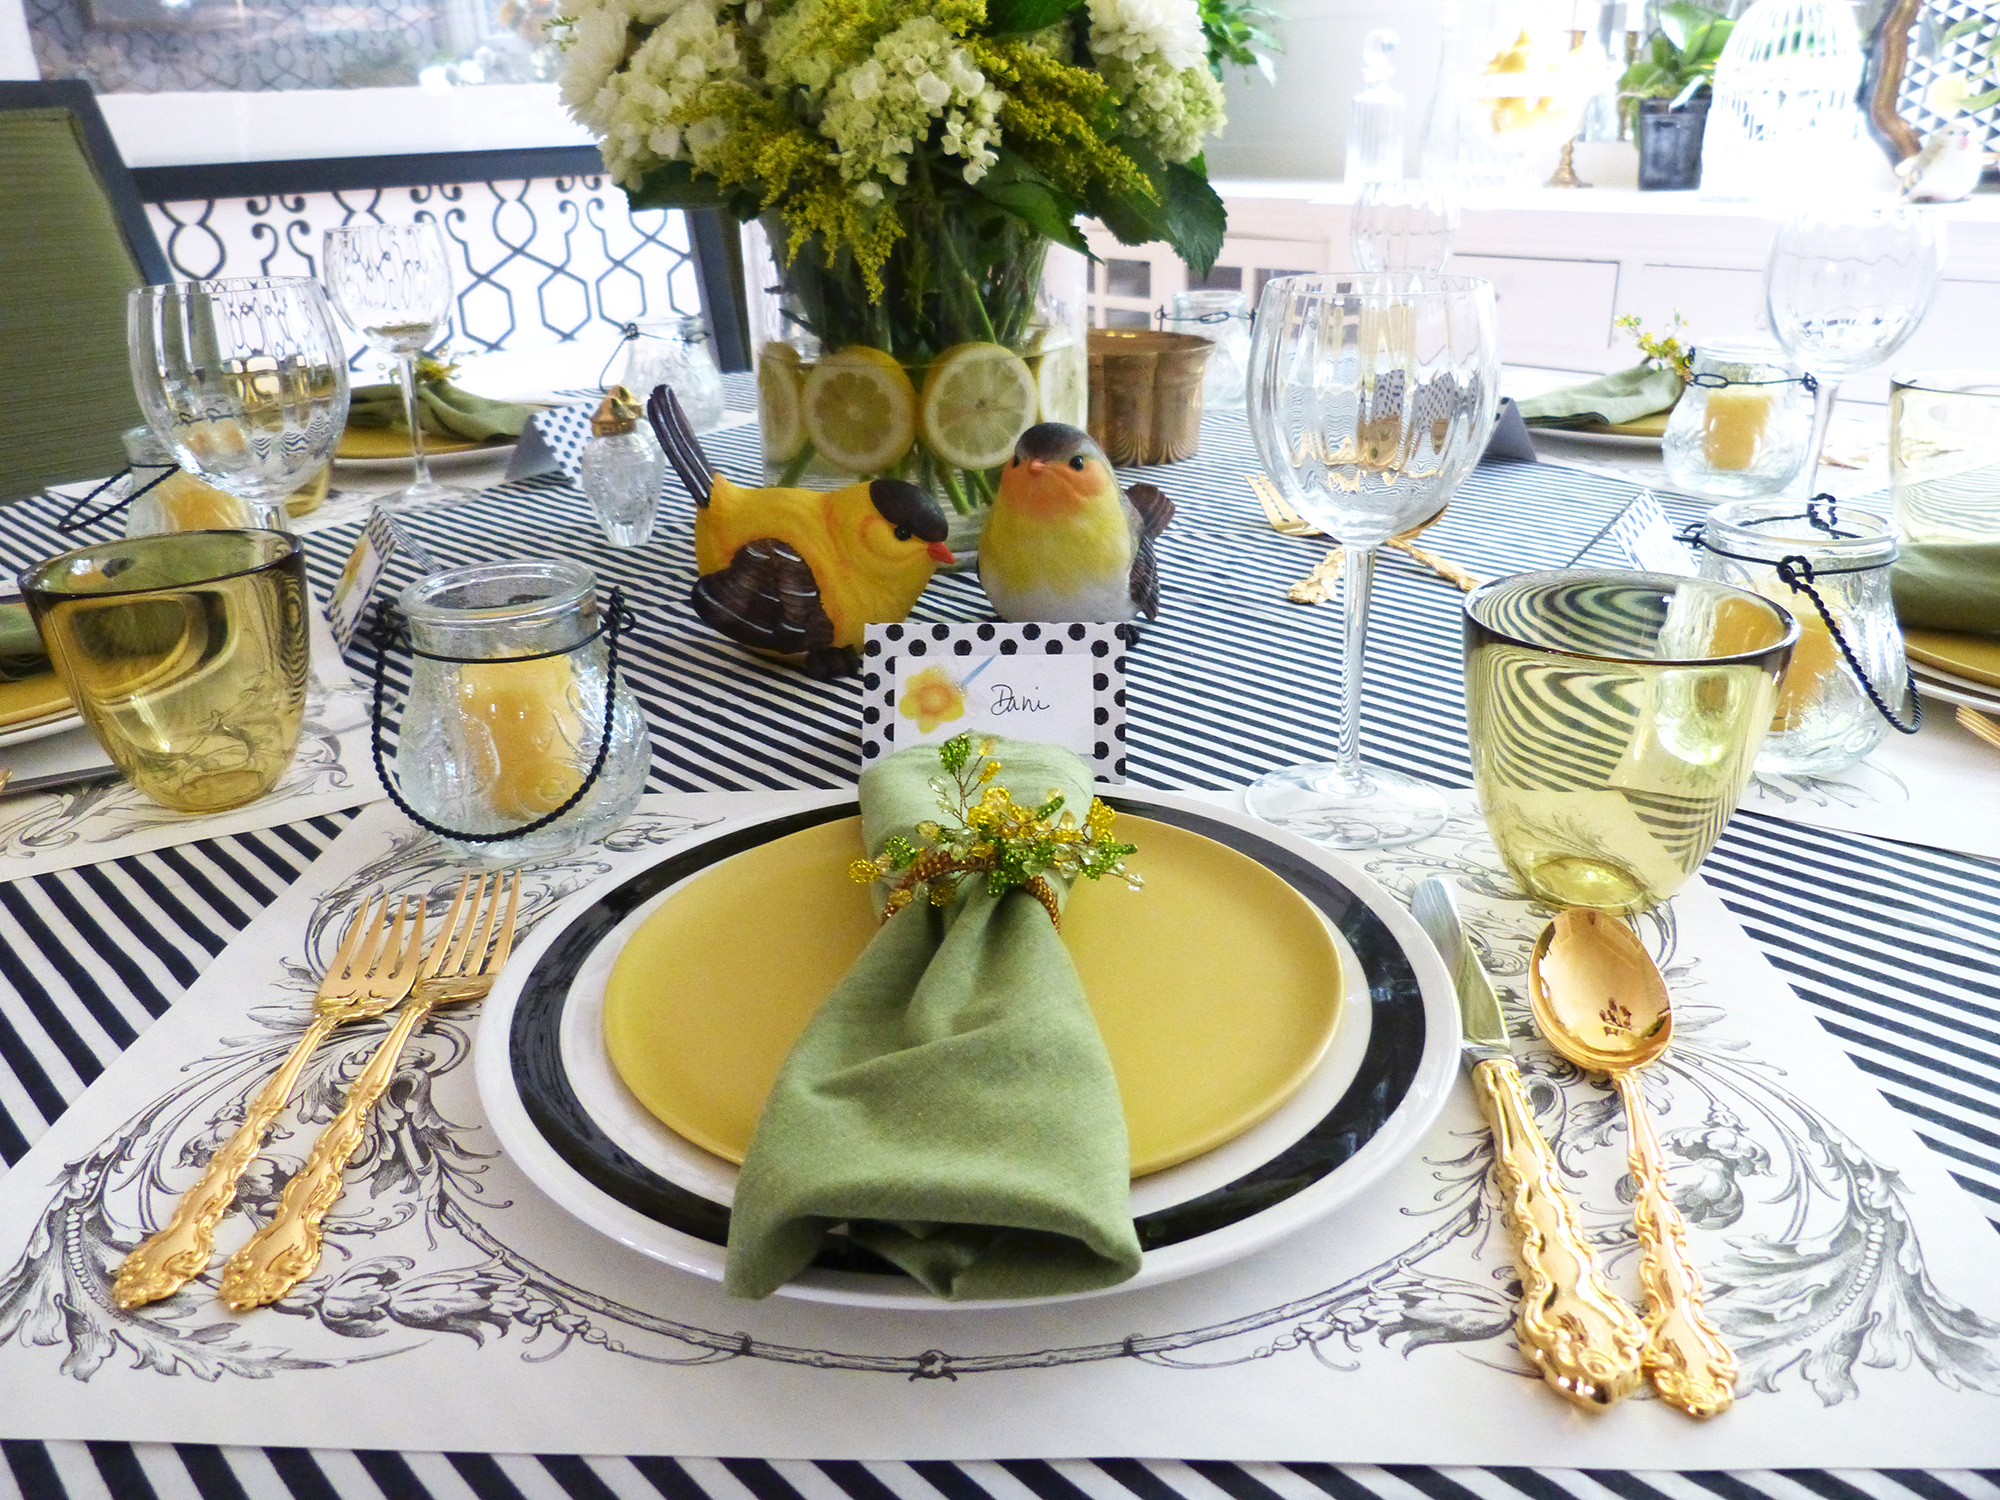 Presenting the first table setting arrangement in my brand new showroom! Every month or so I will post a new table design as I introduce myself to the ... & Table Settings | Home By Design